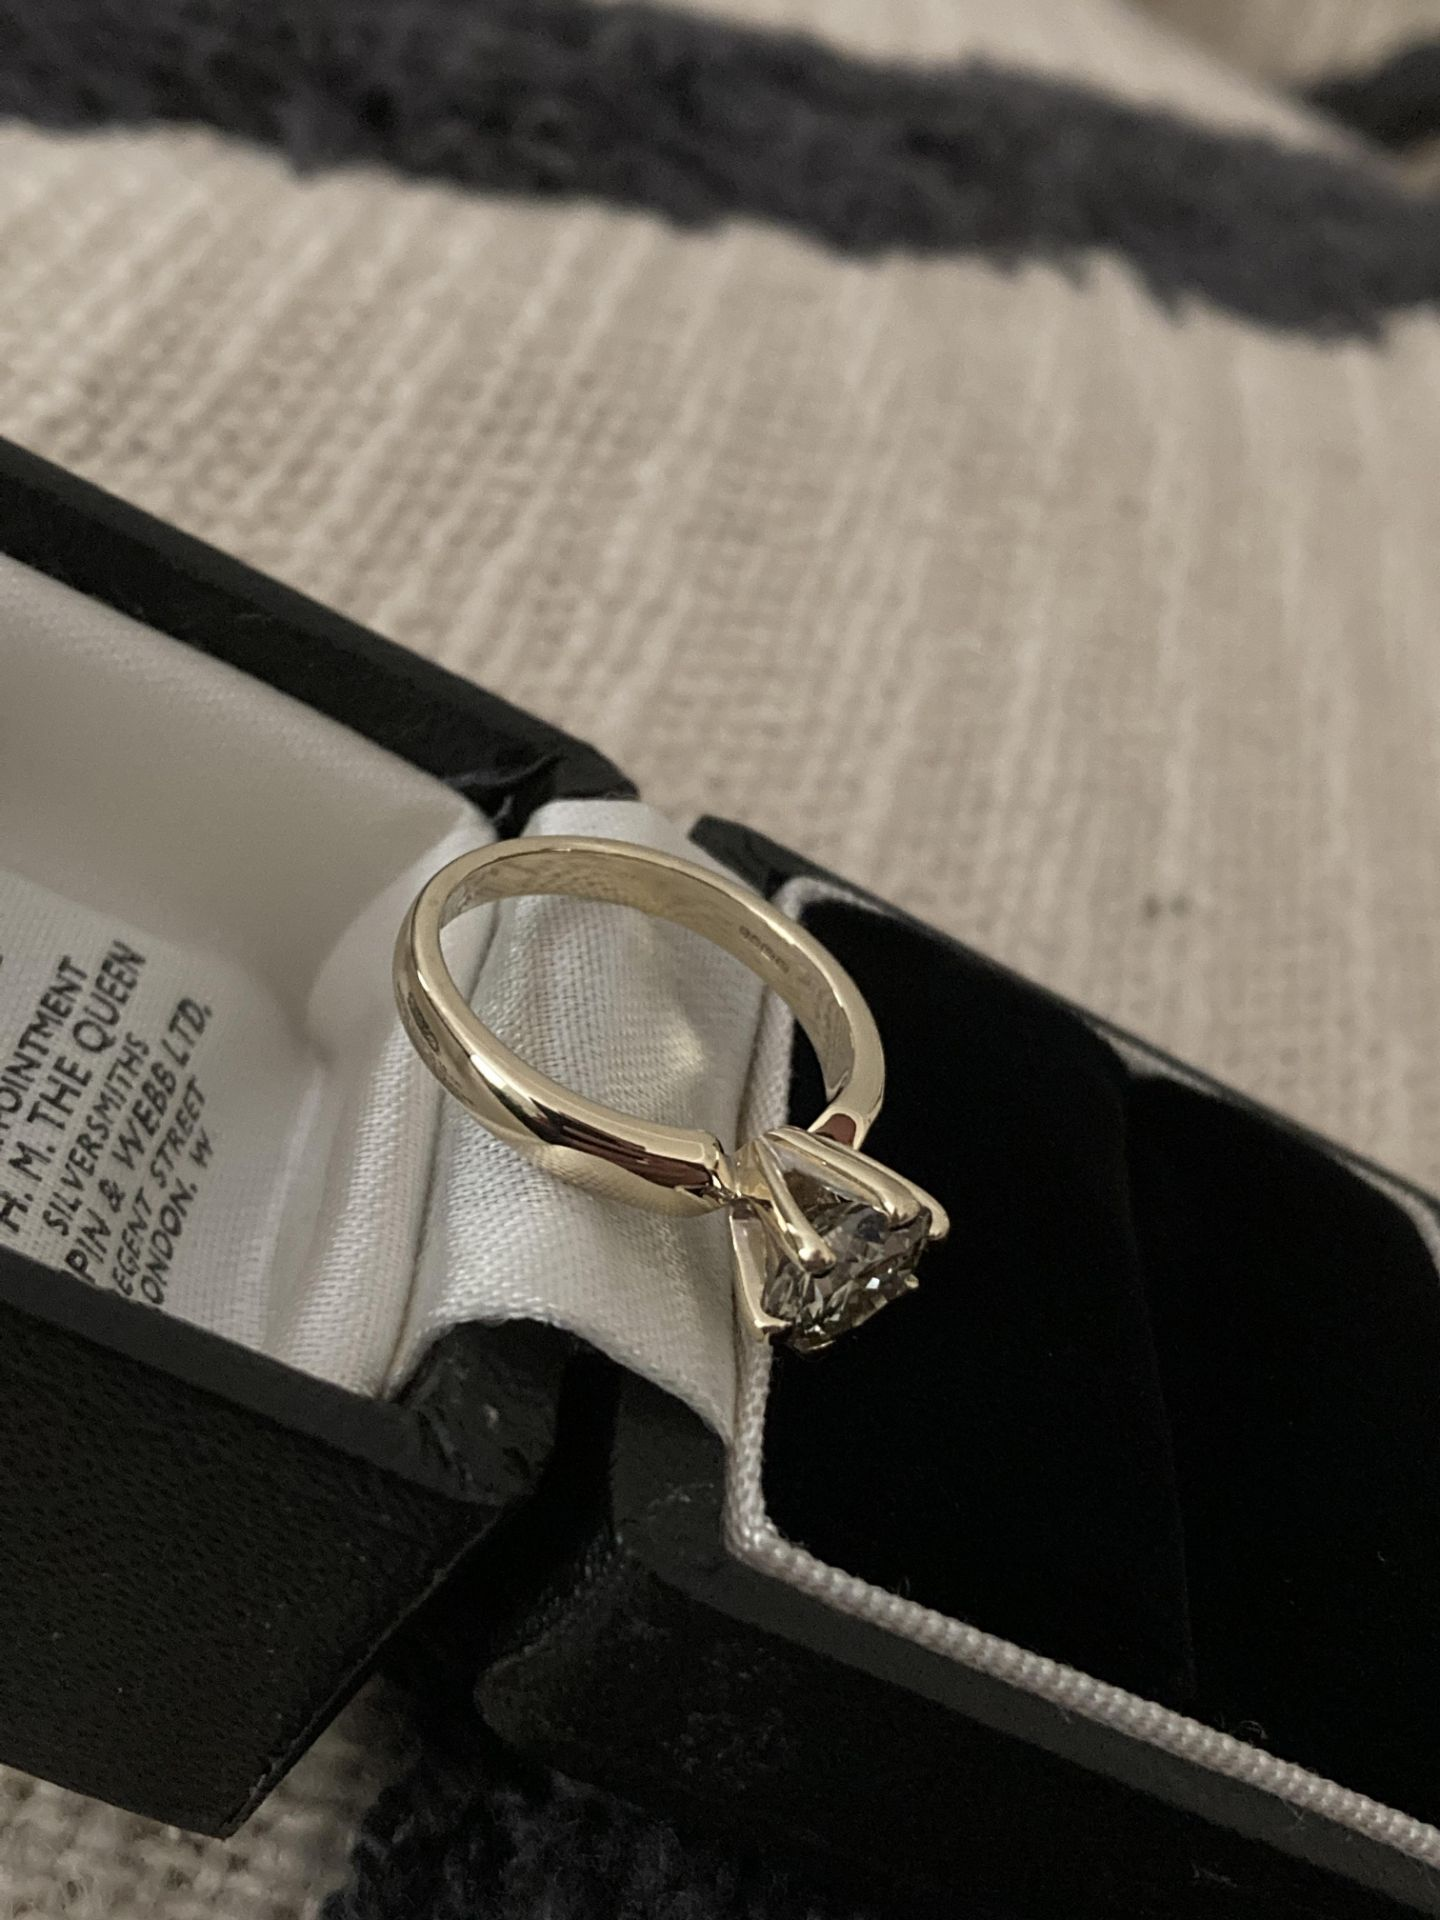 1.54CT DIAMOND SOLITAIRE RING Y. GOLD (ROUND BRILLIANT) - 2012 VALUATION £6,200 INCLUDED - Image 9 of 14